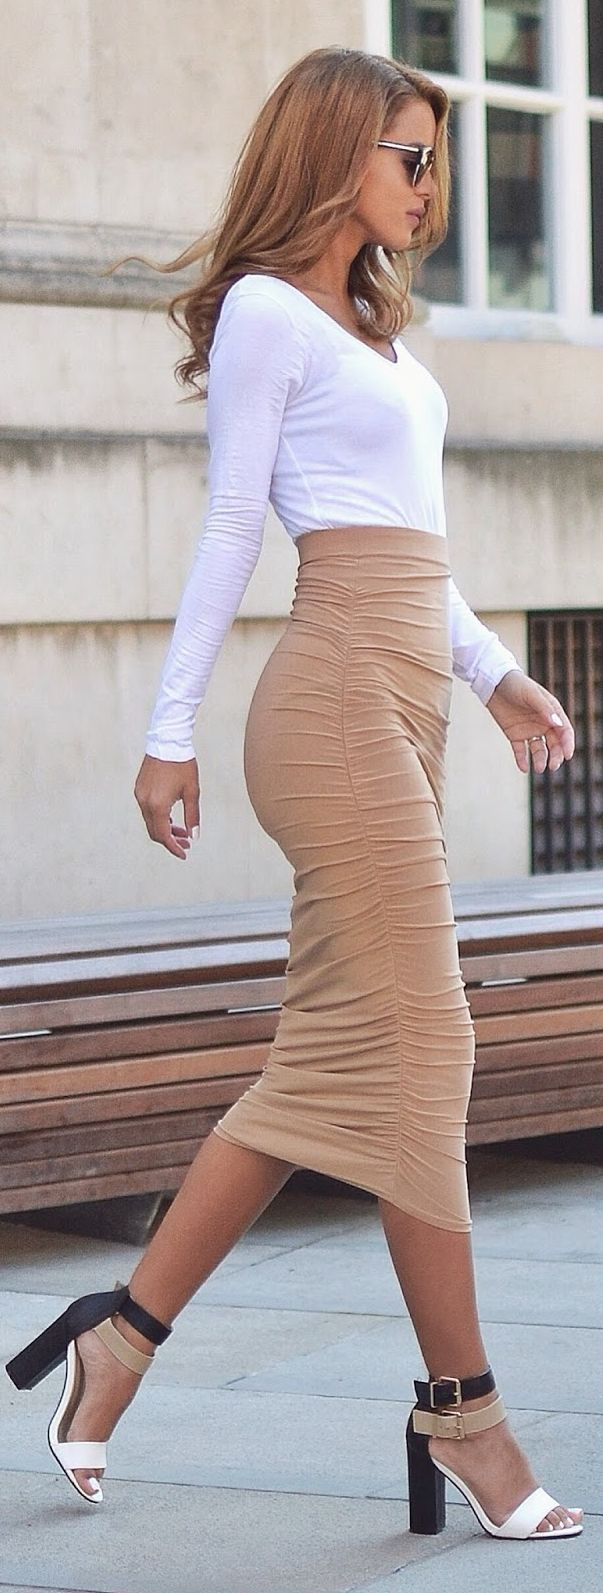 The infamous celebrity style skirt and crop top set. Ruched on each side of…